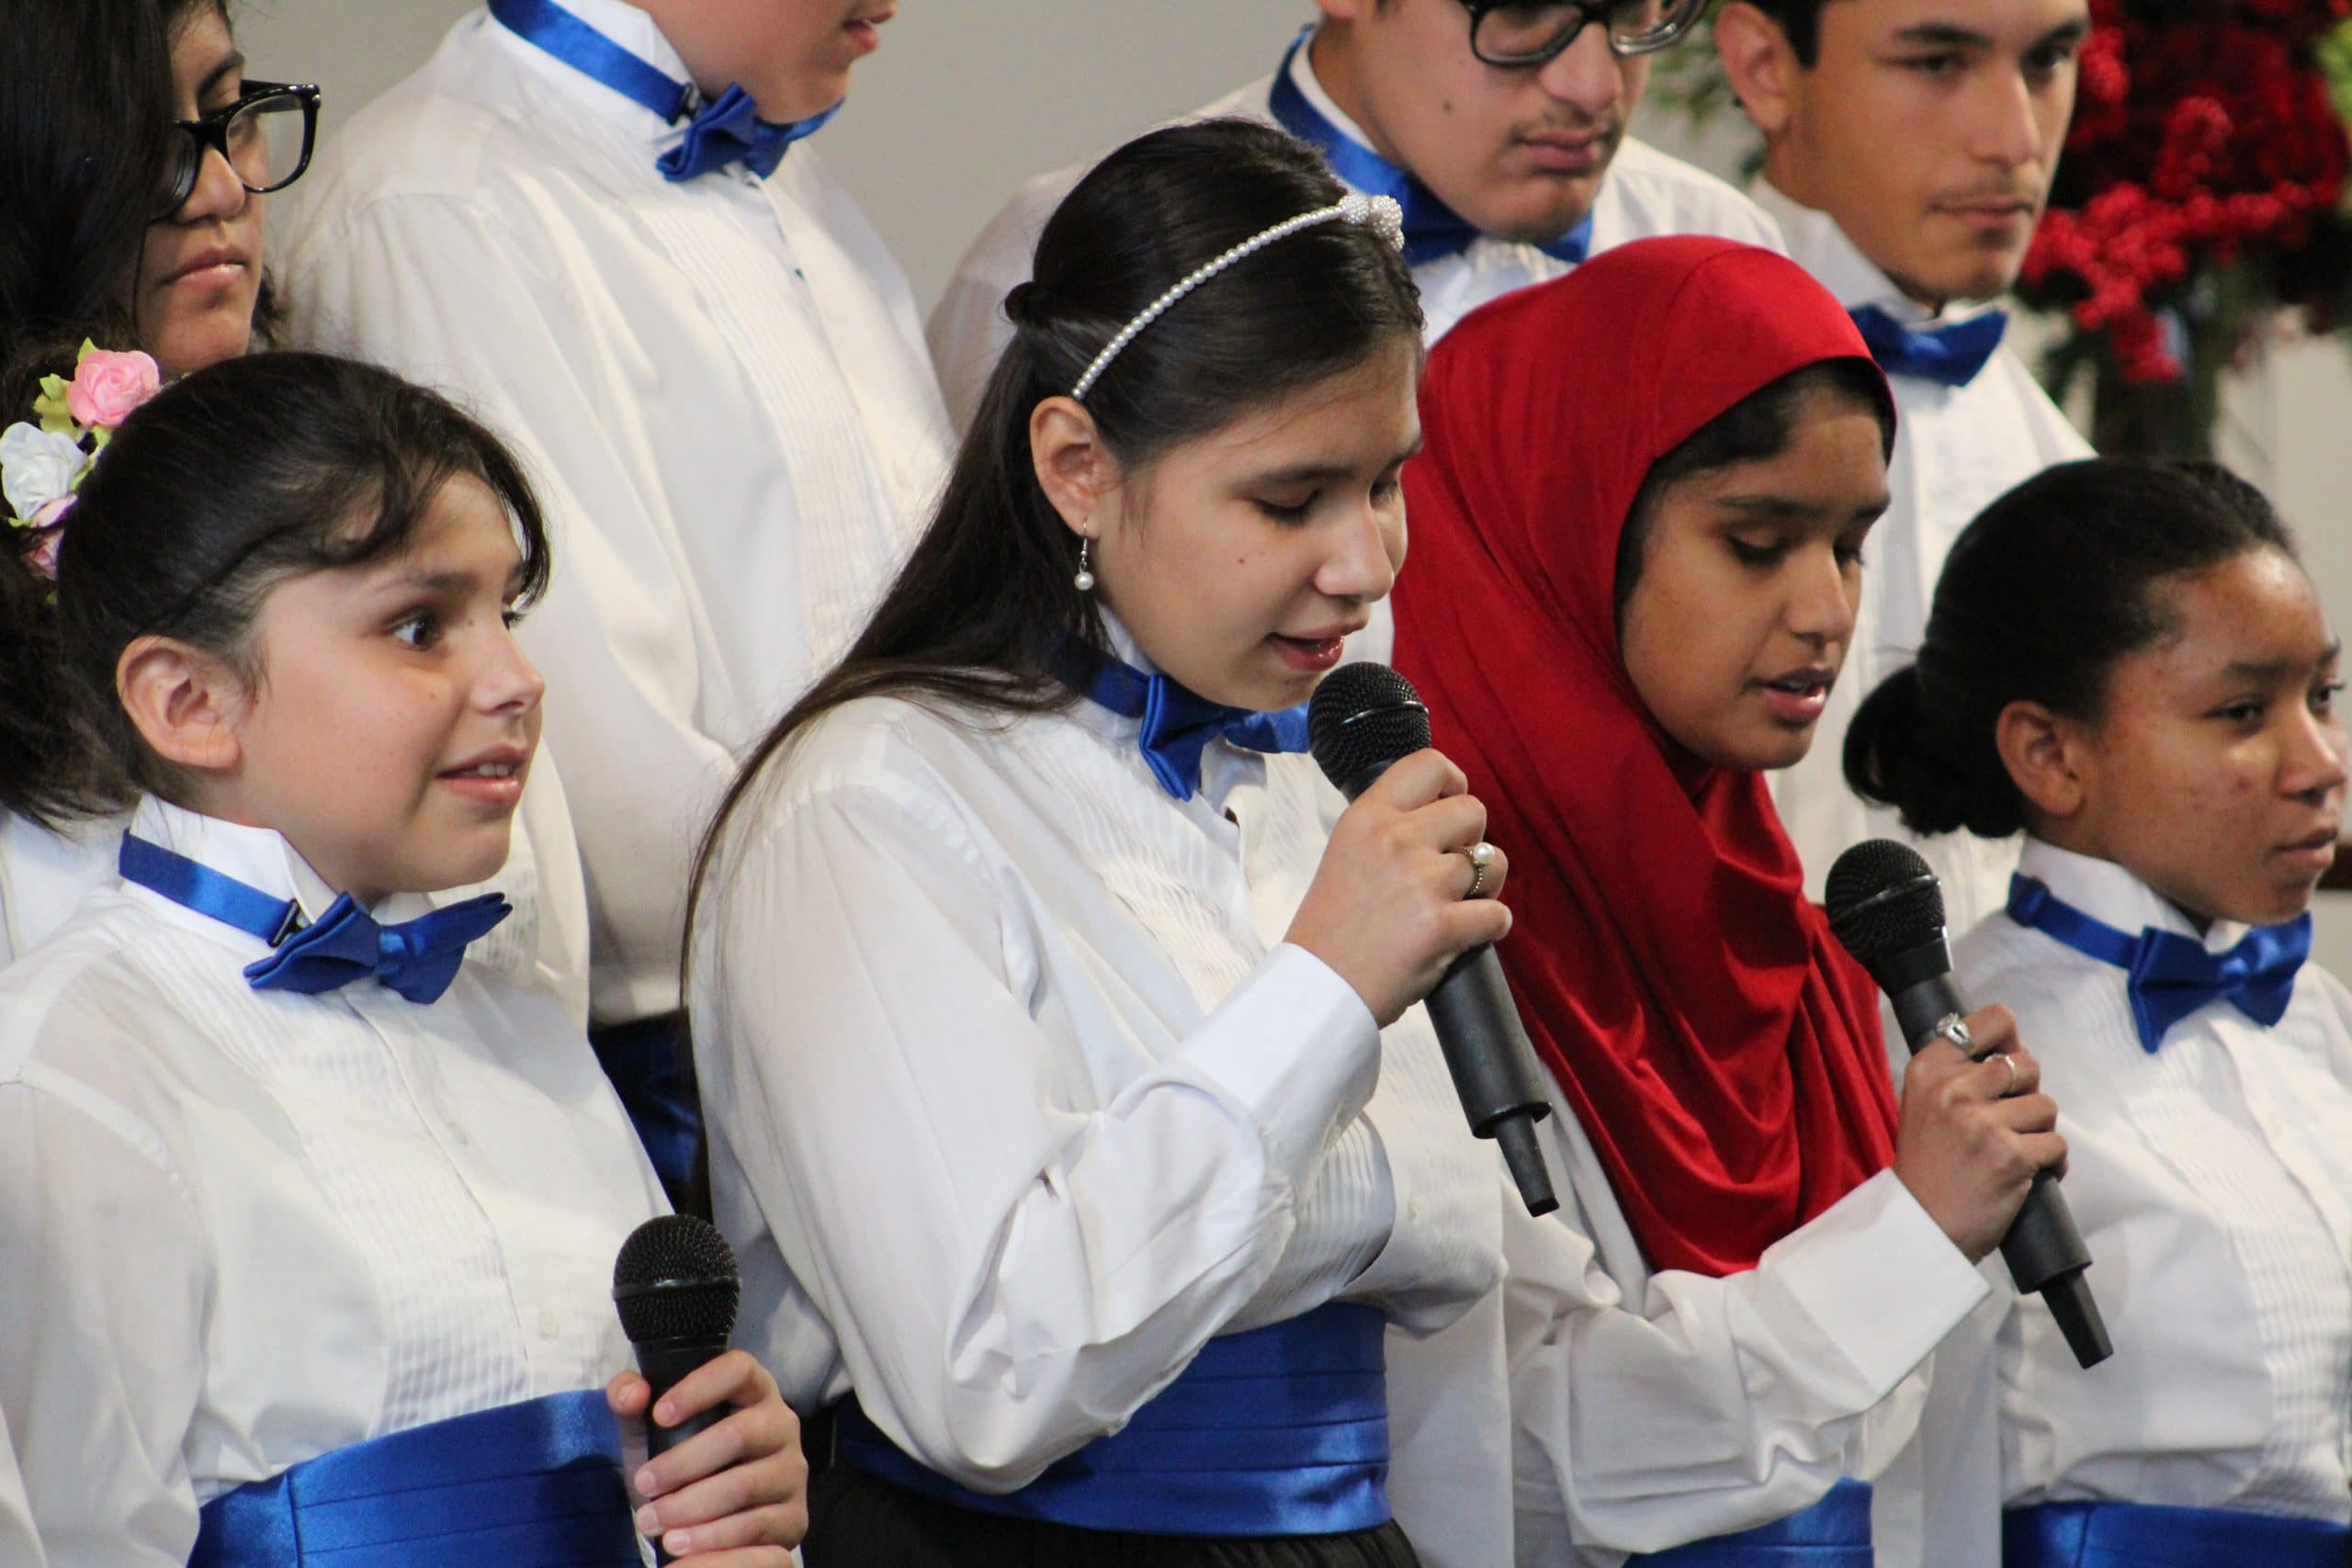 The Braille Institute youth students from Los Angeles and Orange County participated in a Winter Concert